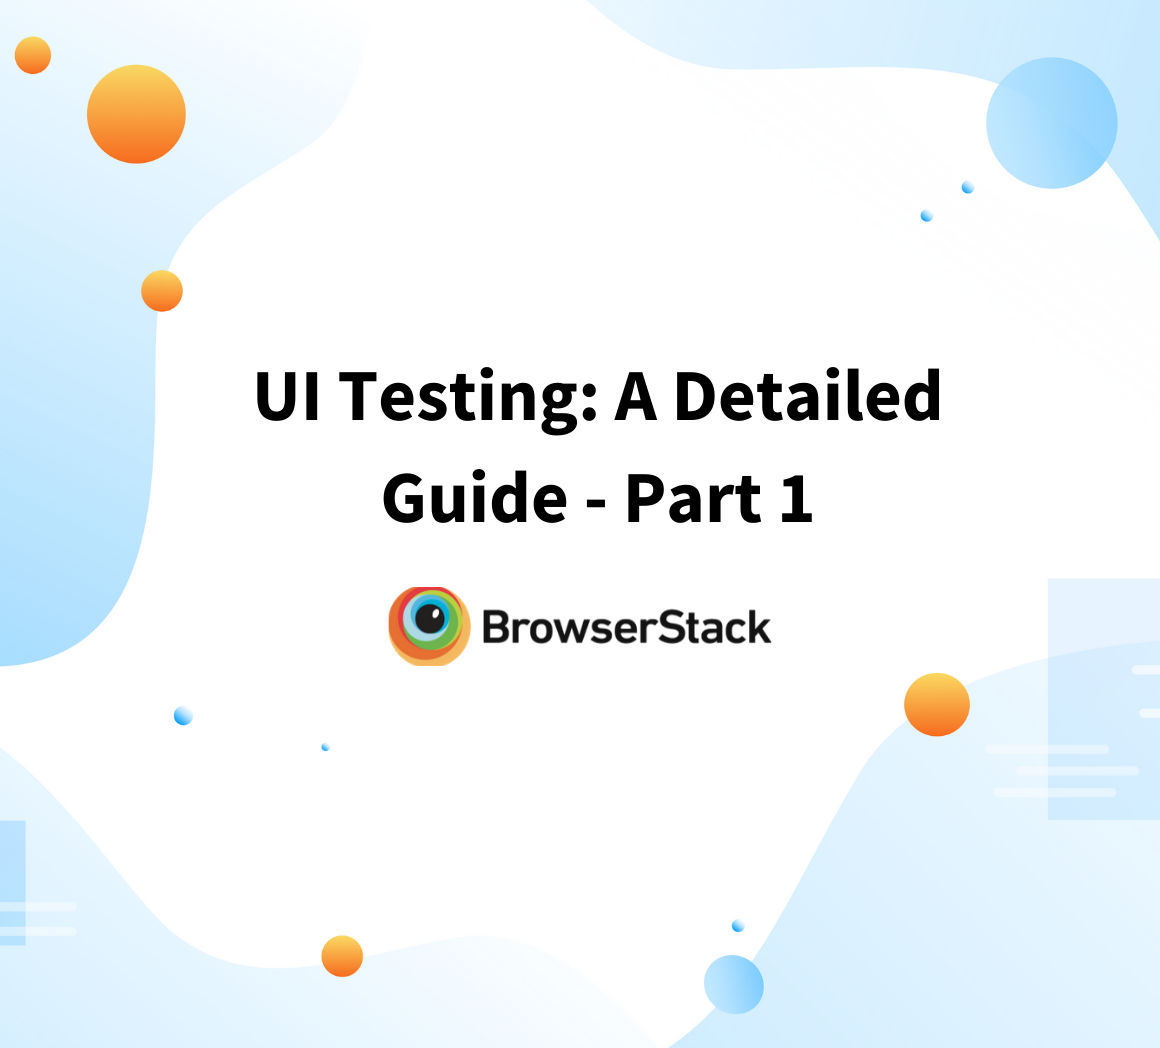 UI Testing: A Detailed Guide